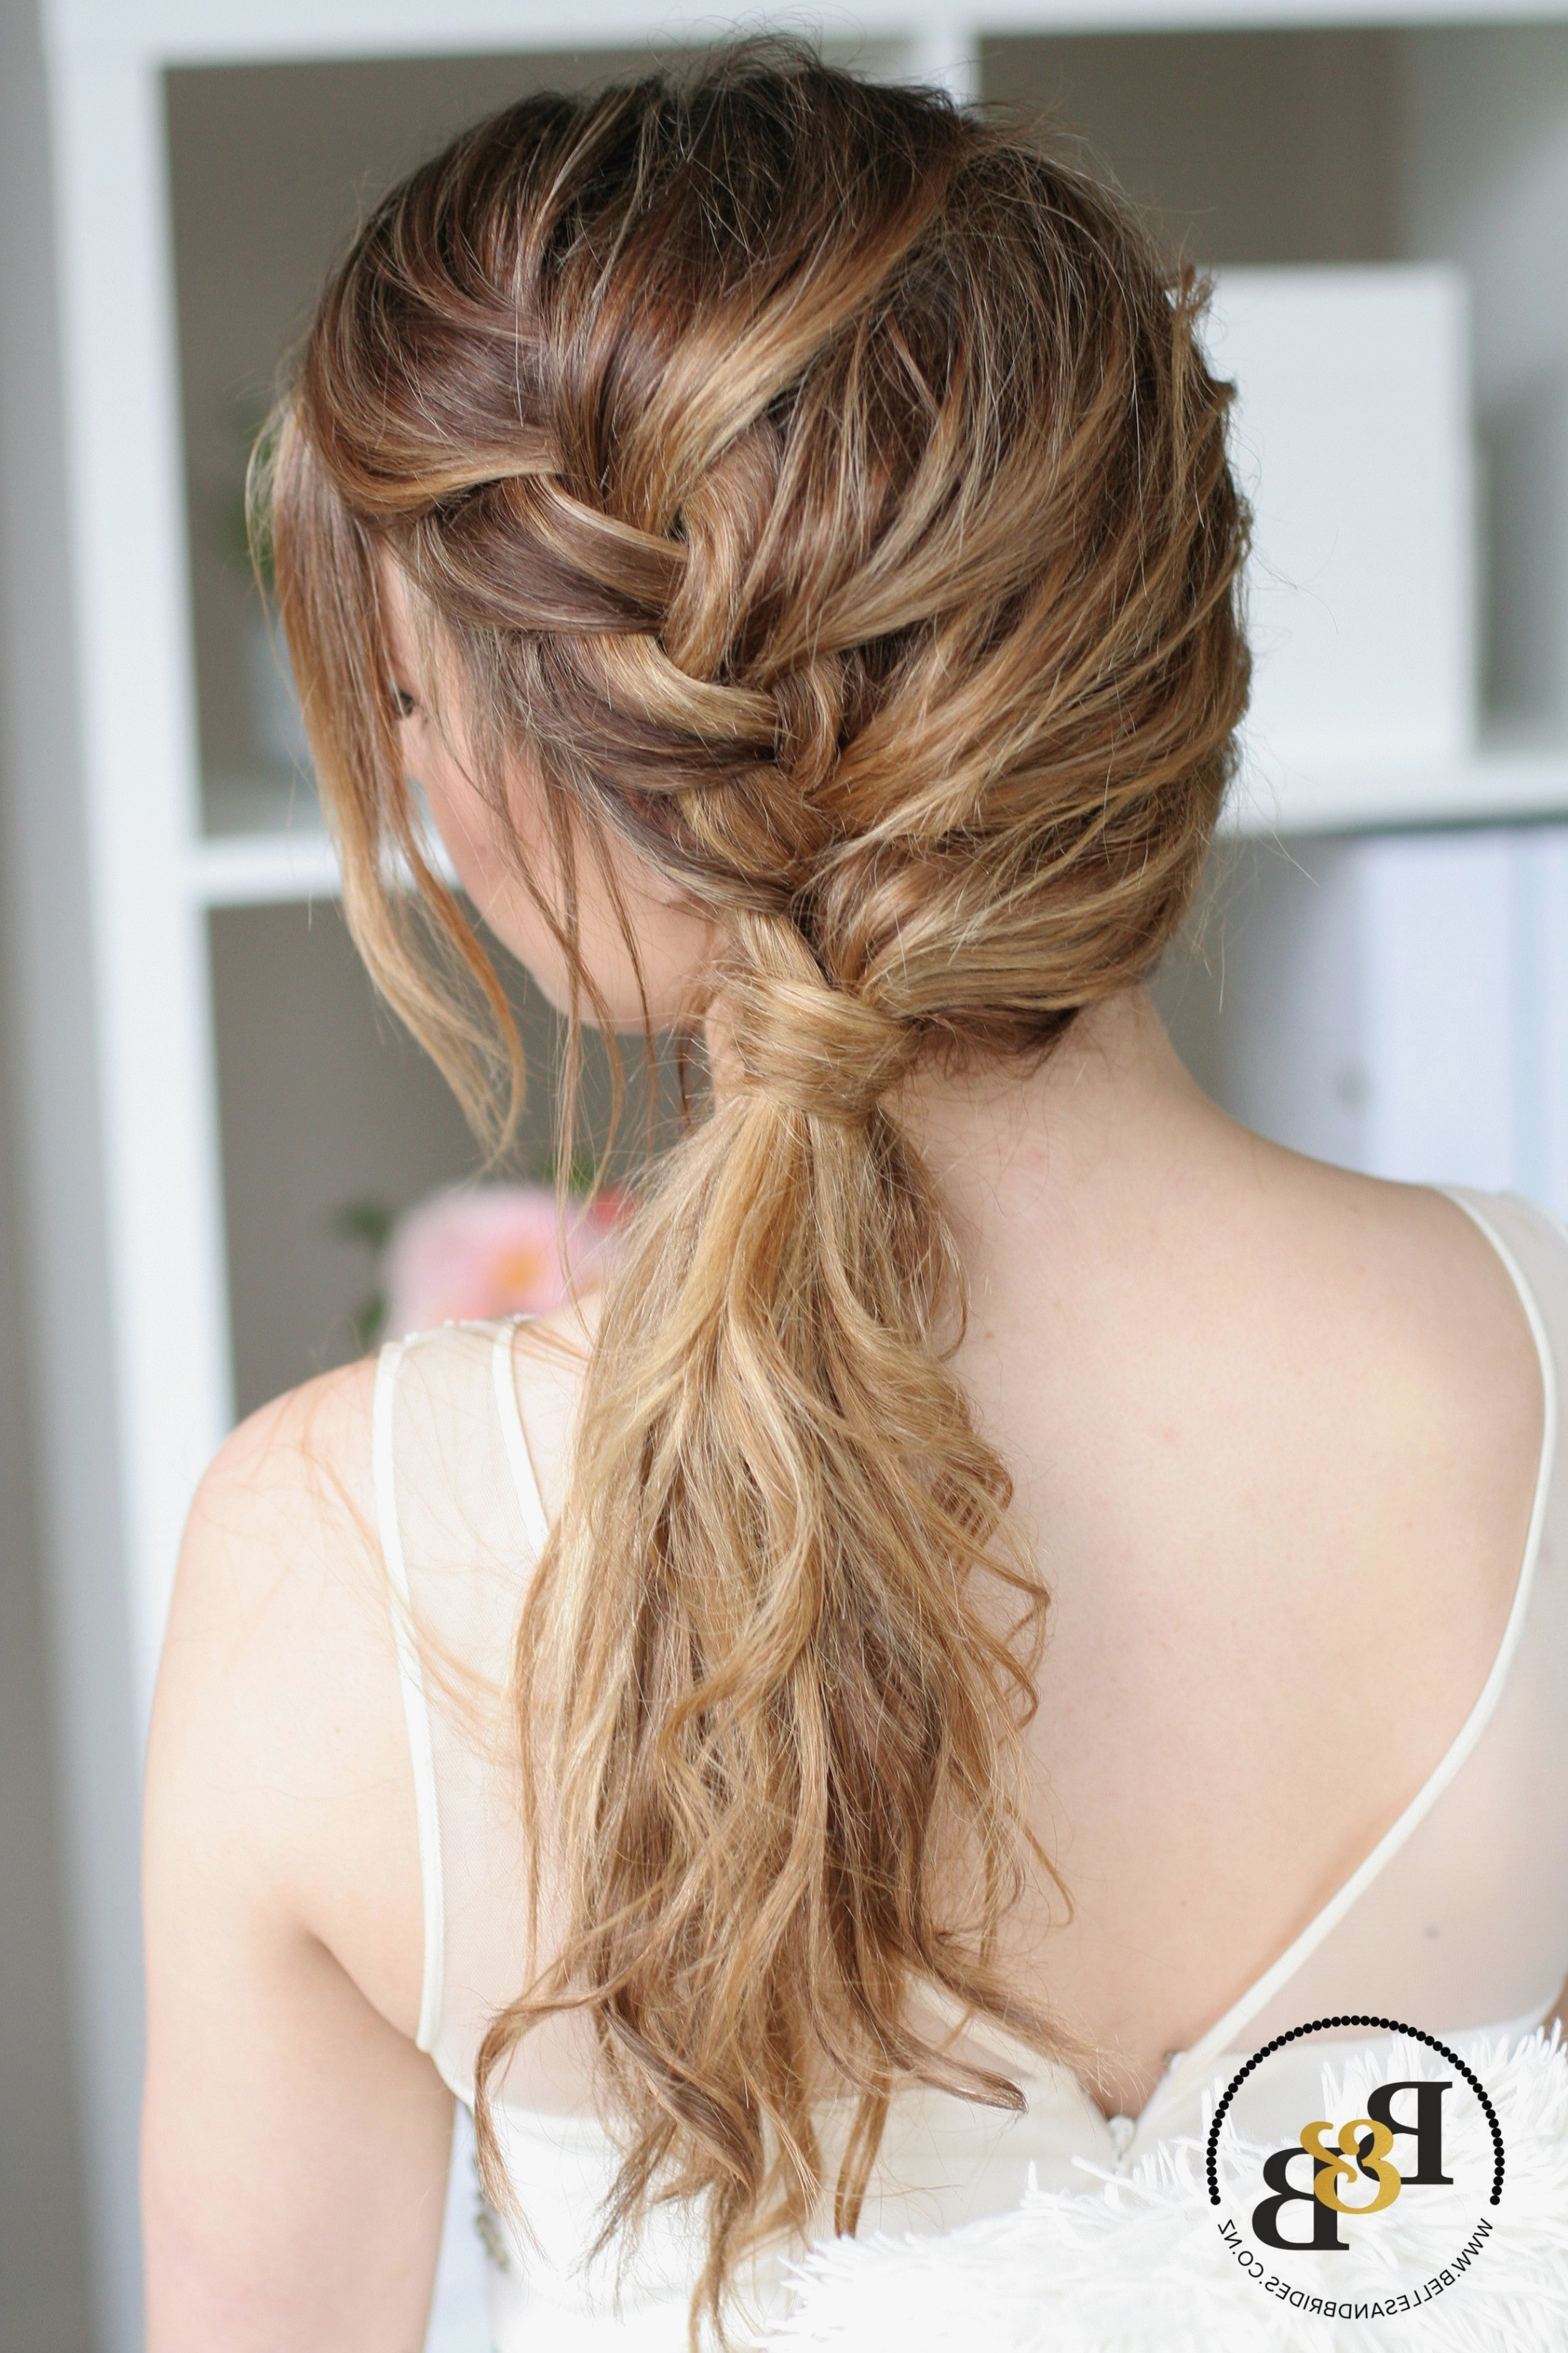 Wedding Hair Down With Braid #bridesmaidhairwithbraid . (View 8 of 15)